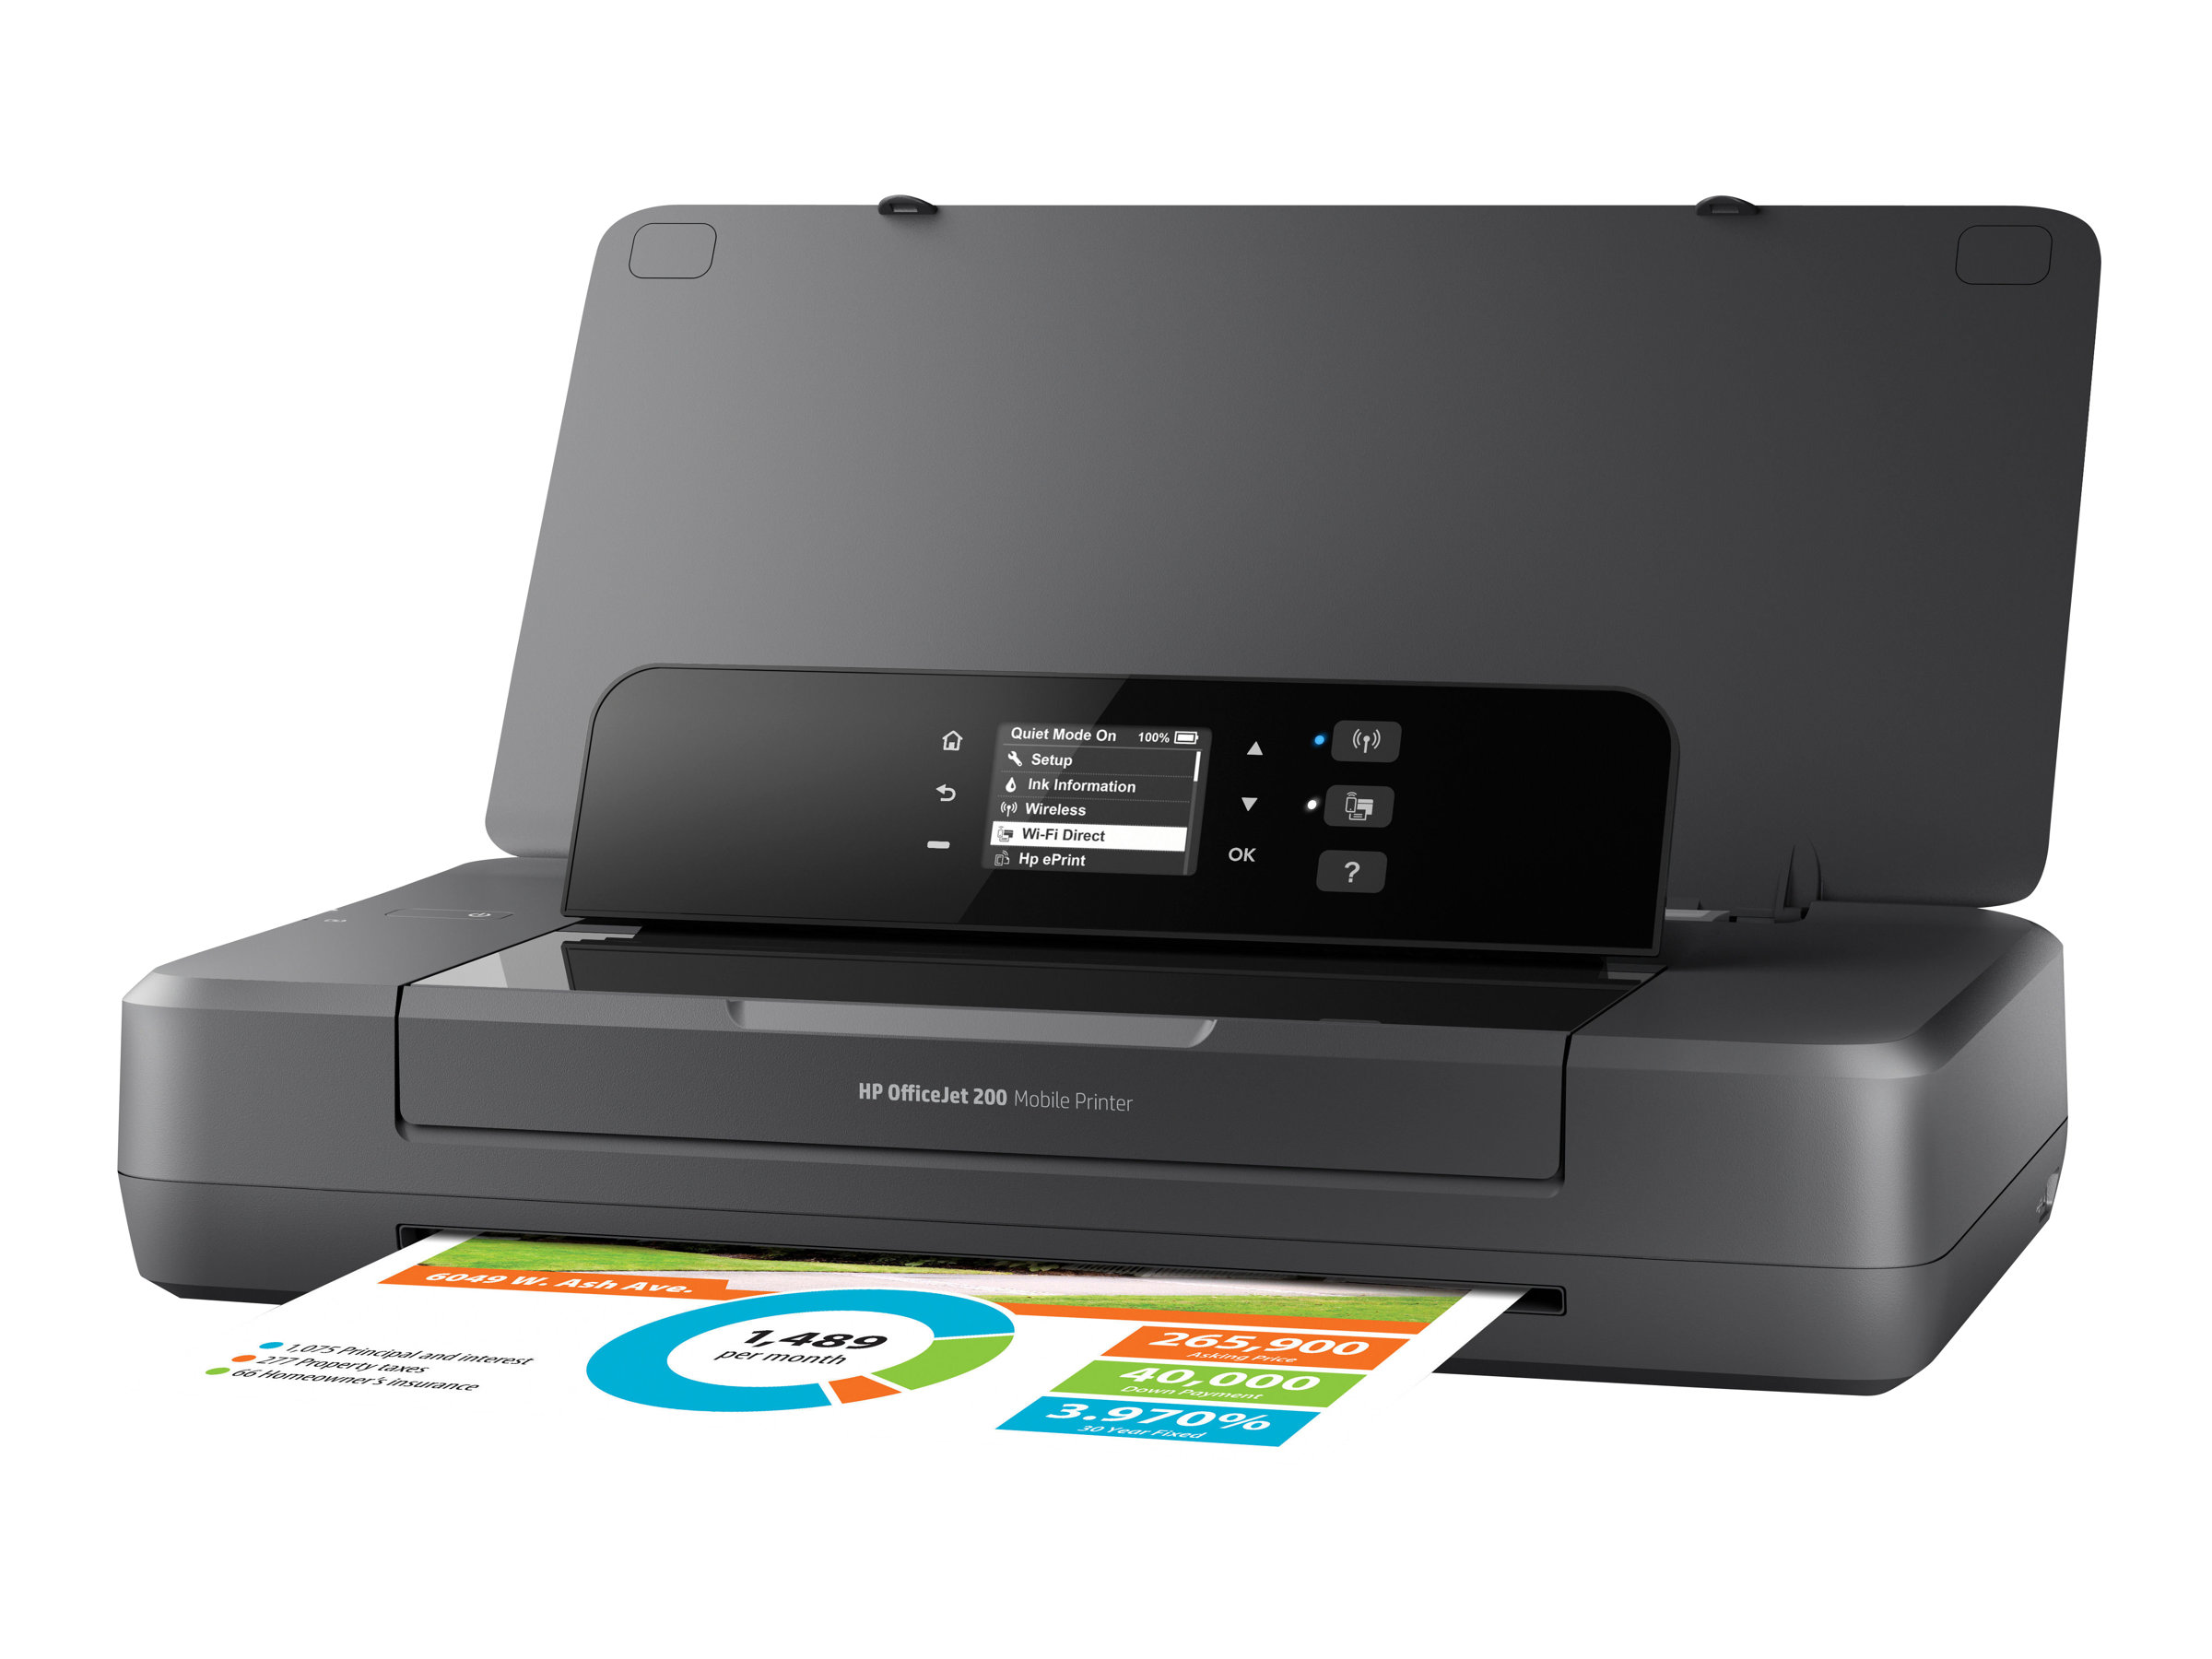 Vorschau: HP Officejet 200 Mobile Printer